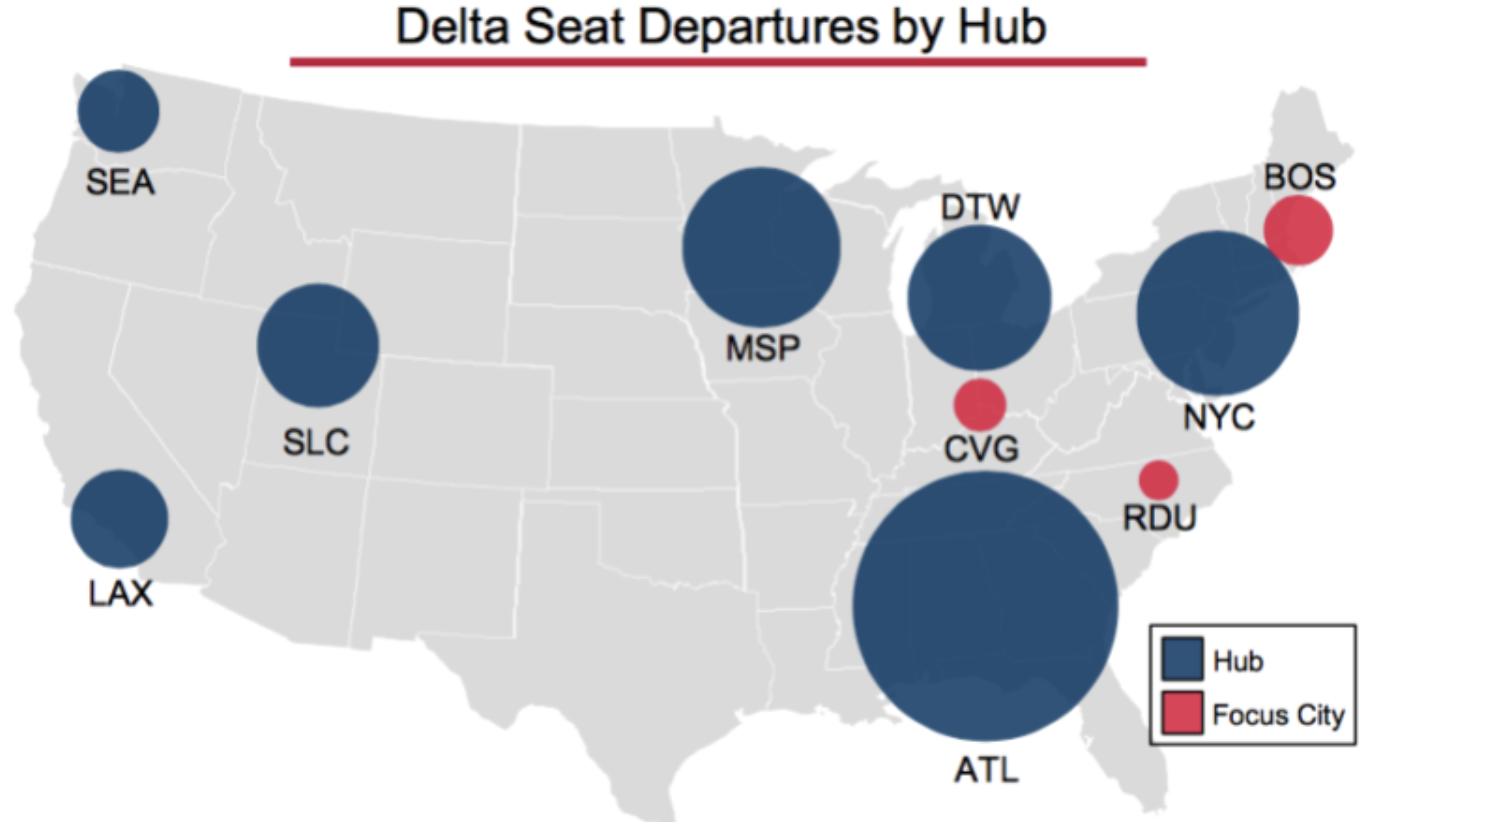 2019 a turning point for JetBlue as Delta Airlines competition